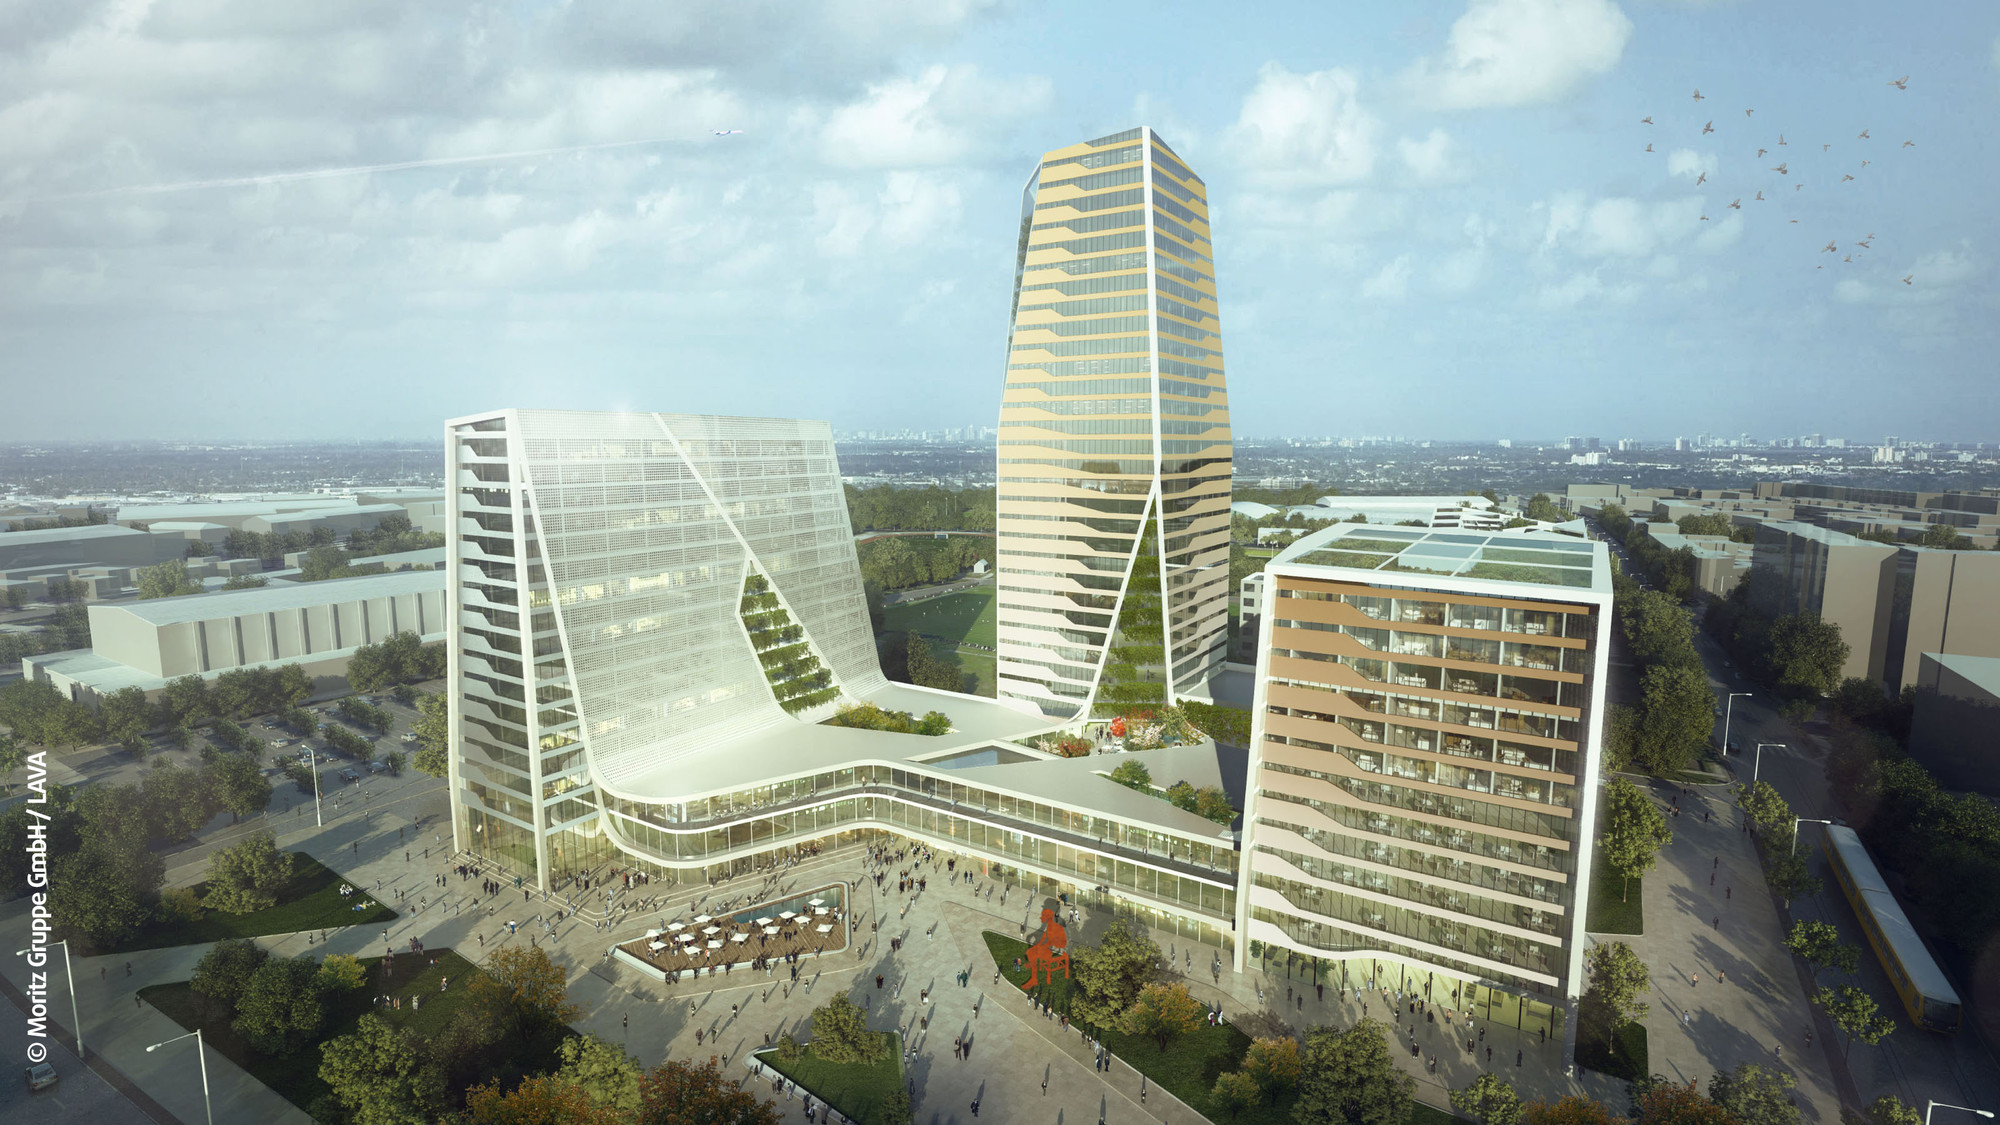 'THE:SQUARE³' Mixed-Use Development Proposal / Moritz Gruppe + LAVA, Courtesy of Moritz Gruppe + LAVA